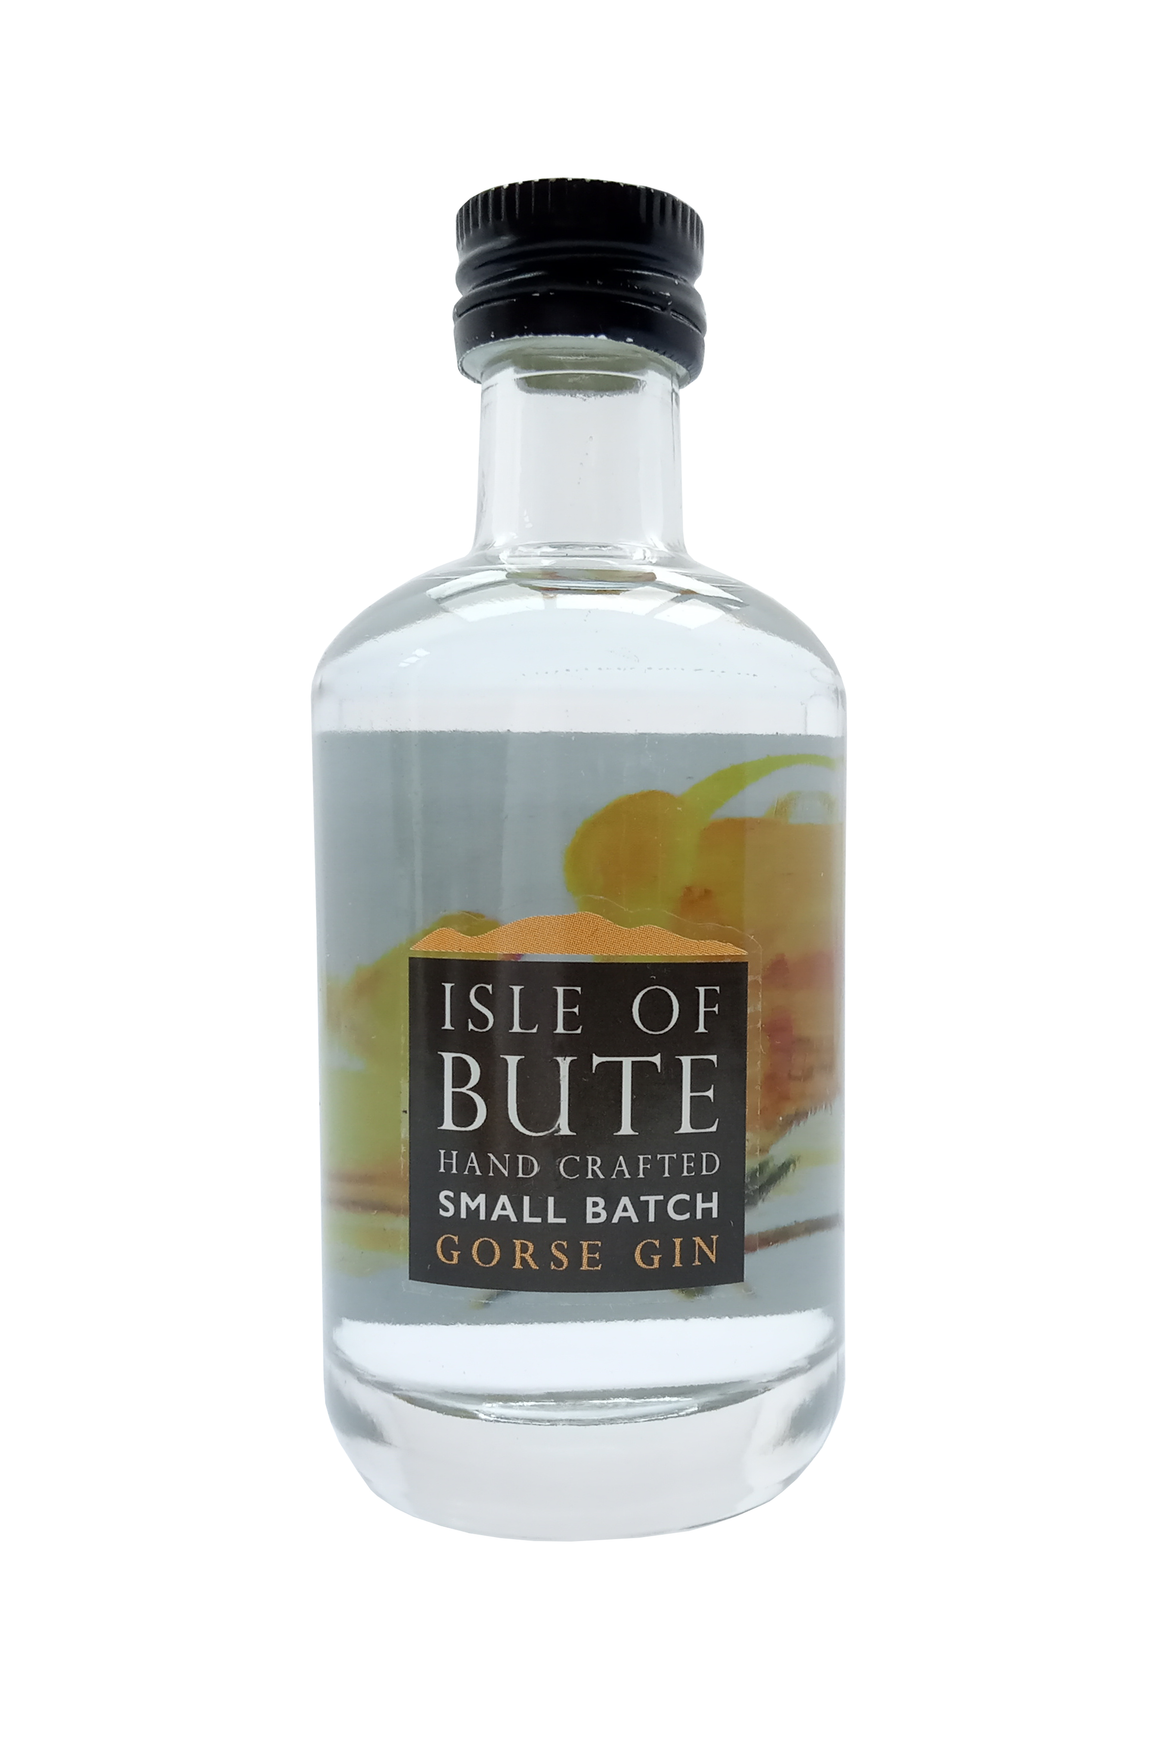 Isle of Bute Gorse miniature gin 5cl 43% abv